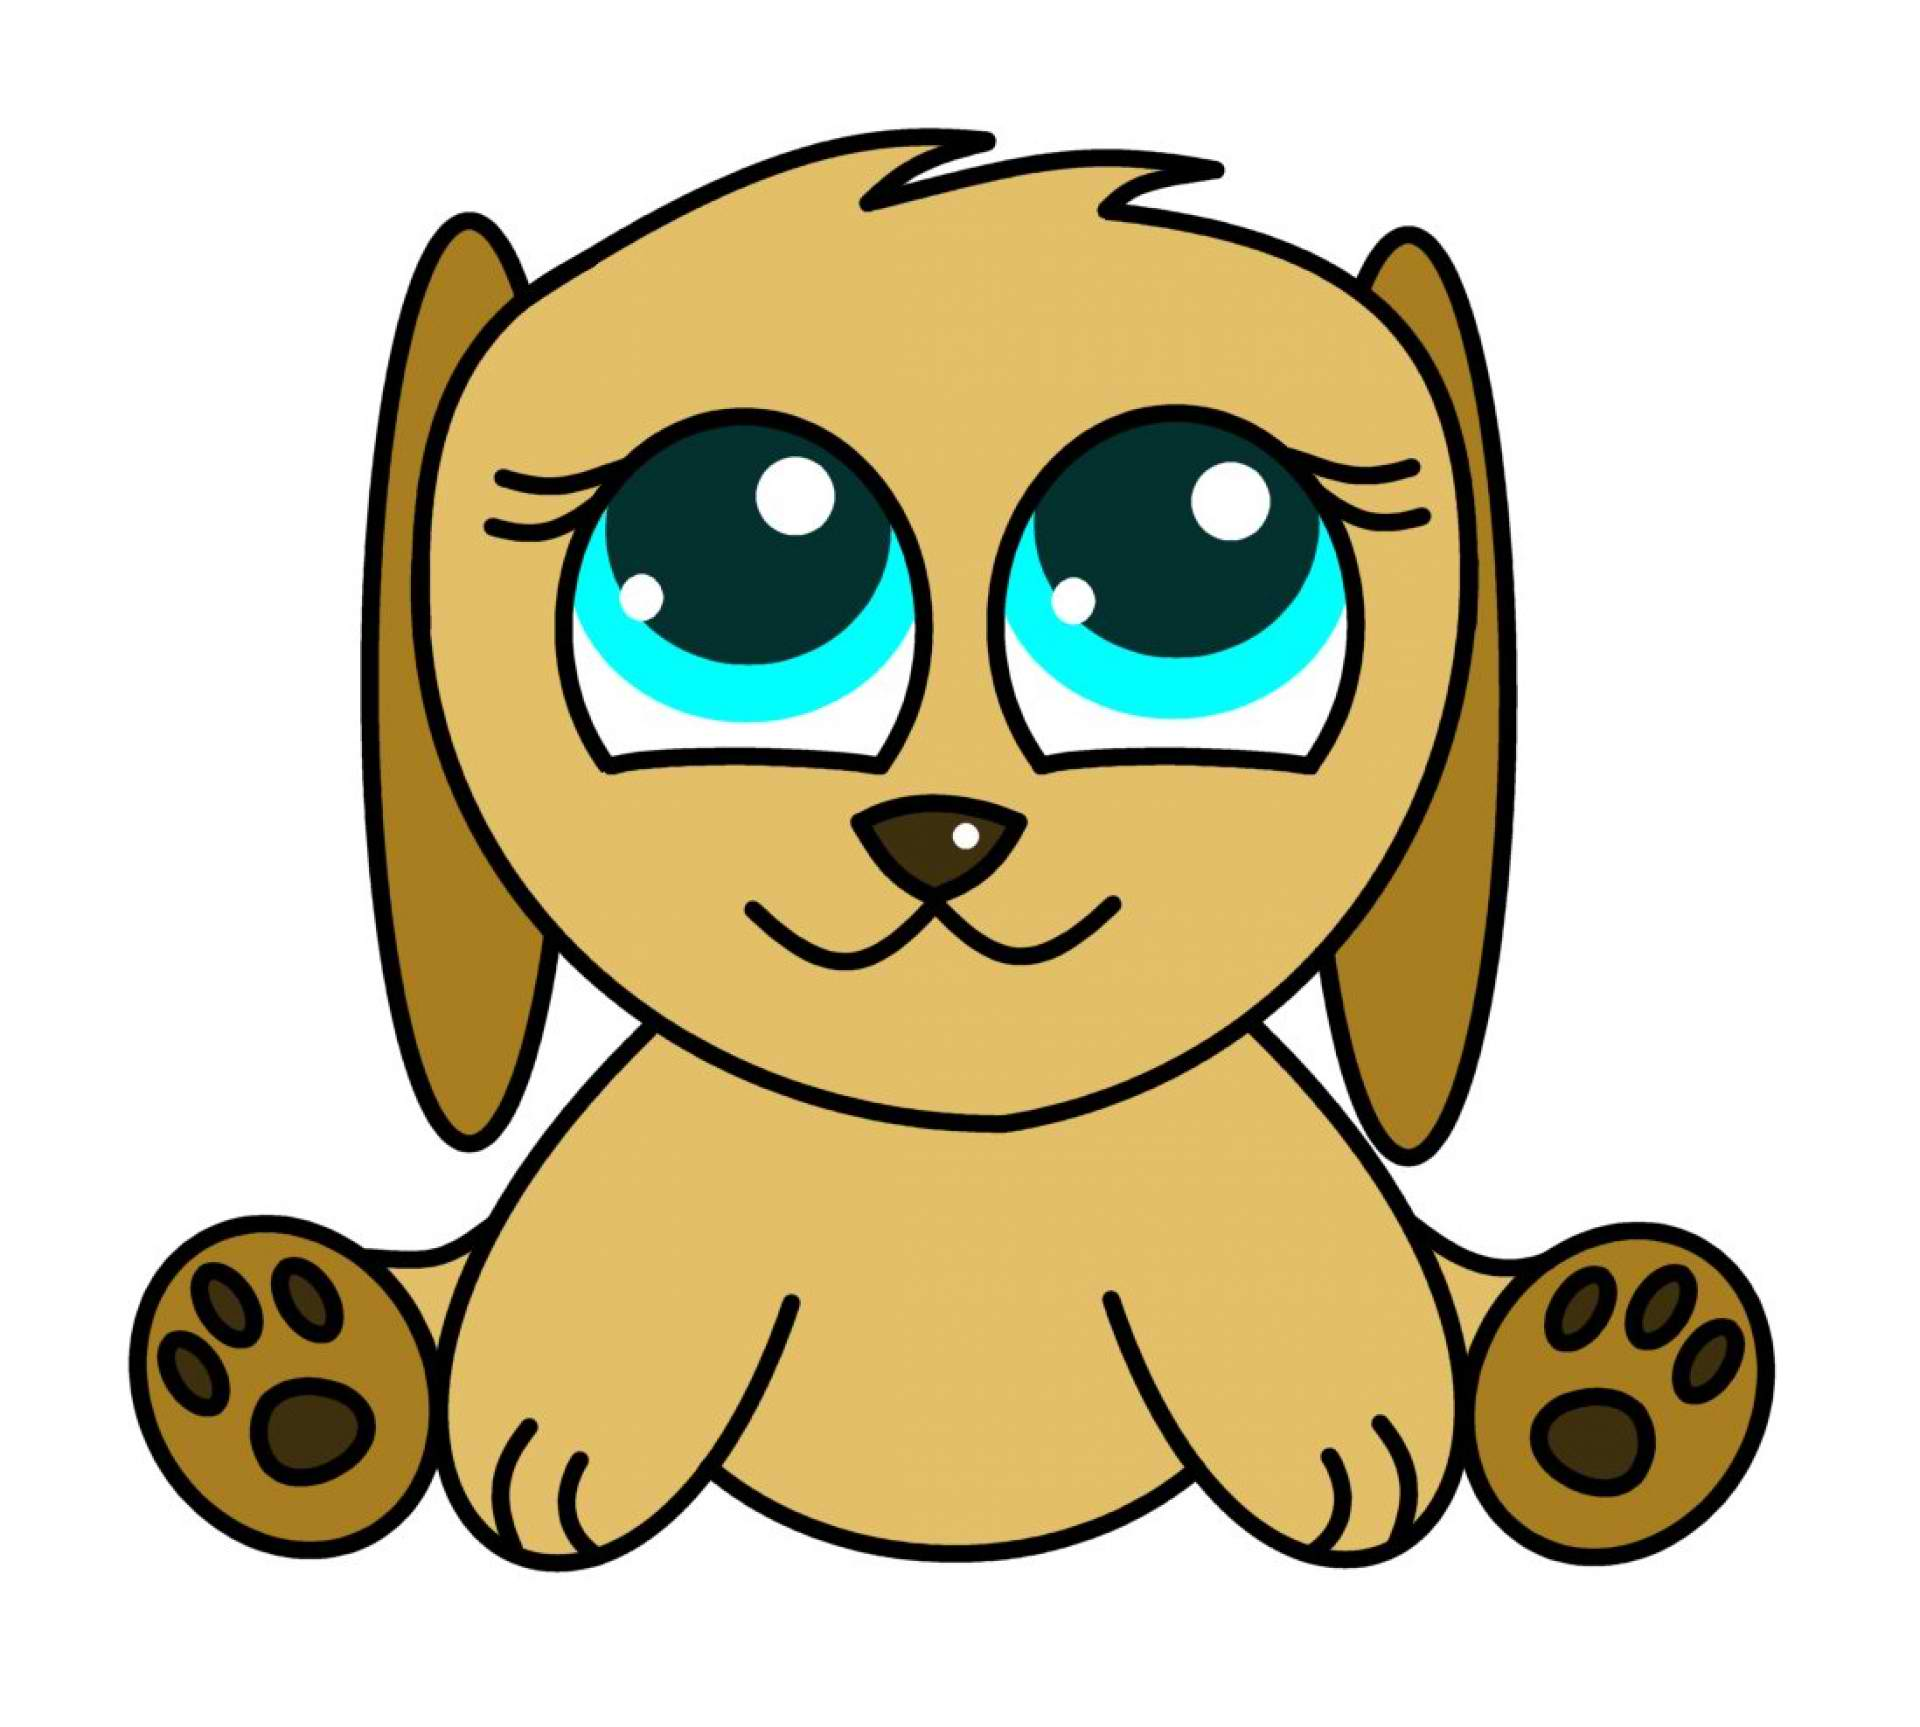 Must see Puppies Army Adorable Dog - 49457-how-to-draw-cartoons-anime-puppy_1920x1080  Photograph_464872  .jpg